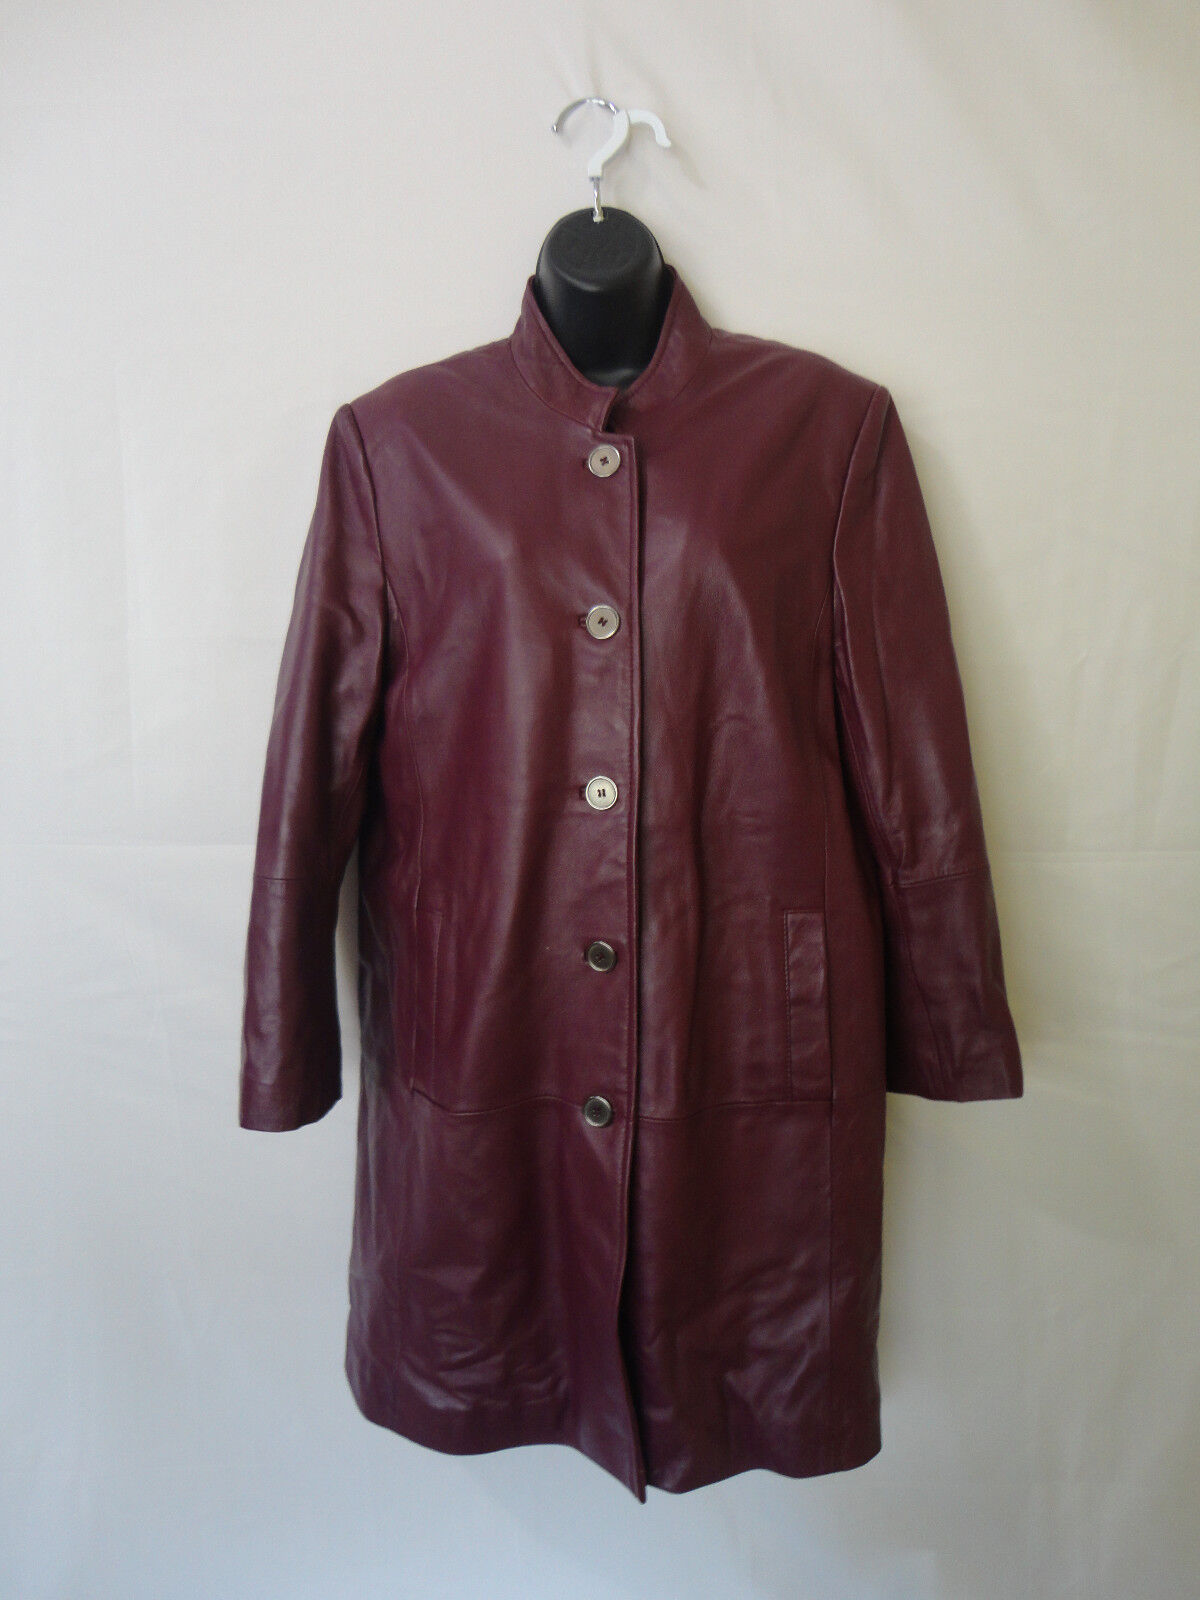 Excelled Women's Vinous Leather Buttons Up Collar Coat Size M